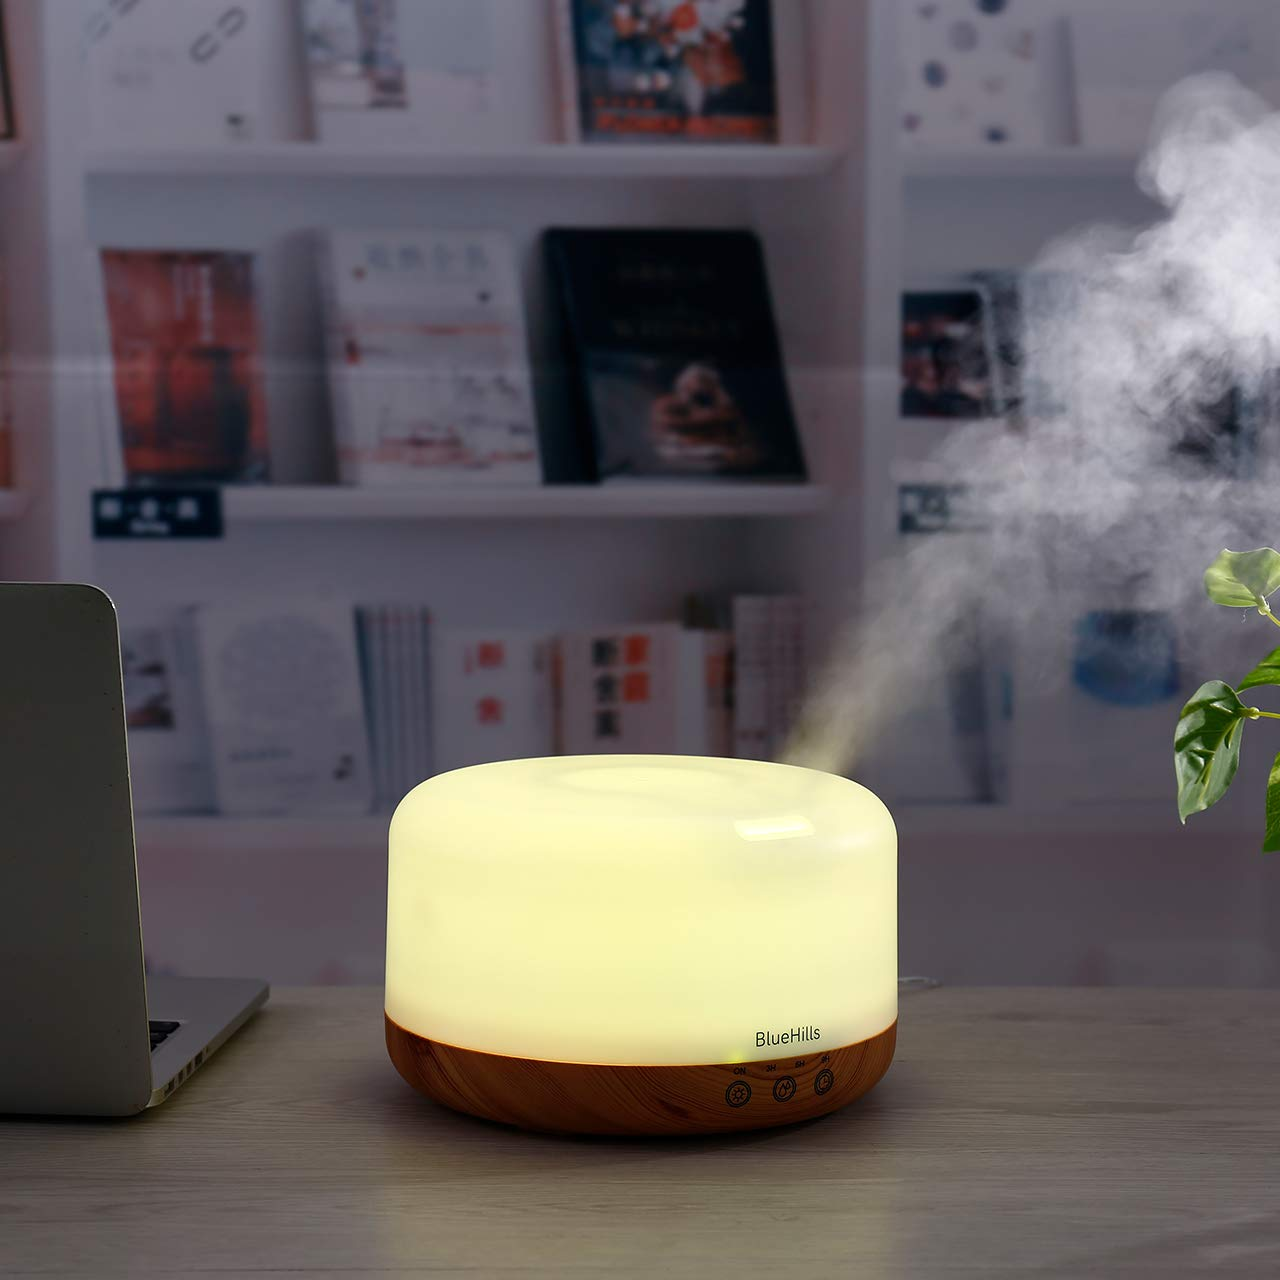 BlueHills Premium 1000 ML XL Essential Oil Diffuser Aromatherapy Humidifier with Remote Timer for Large Room Home 18 Hour Run Huge Coverage Area 1 Liter Mood Light Extra Large Capacity Wood Grain D004